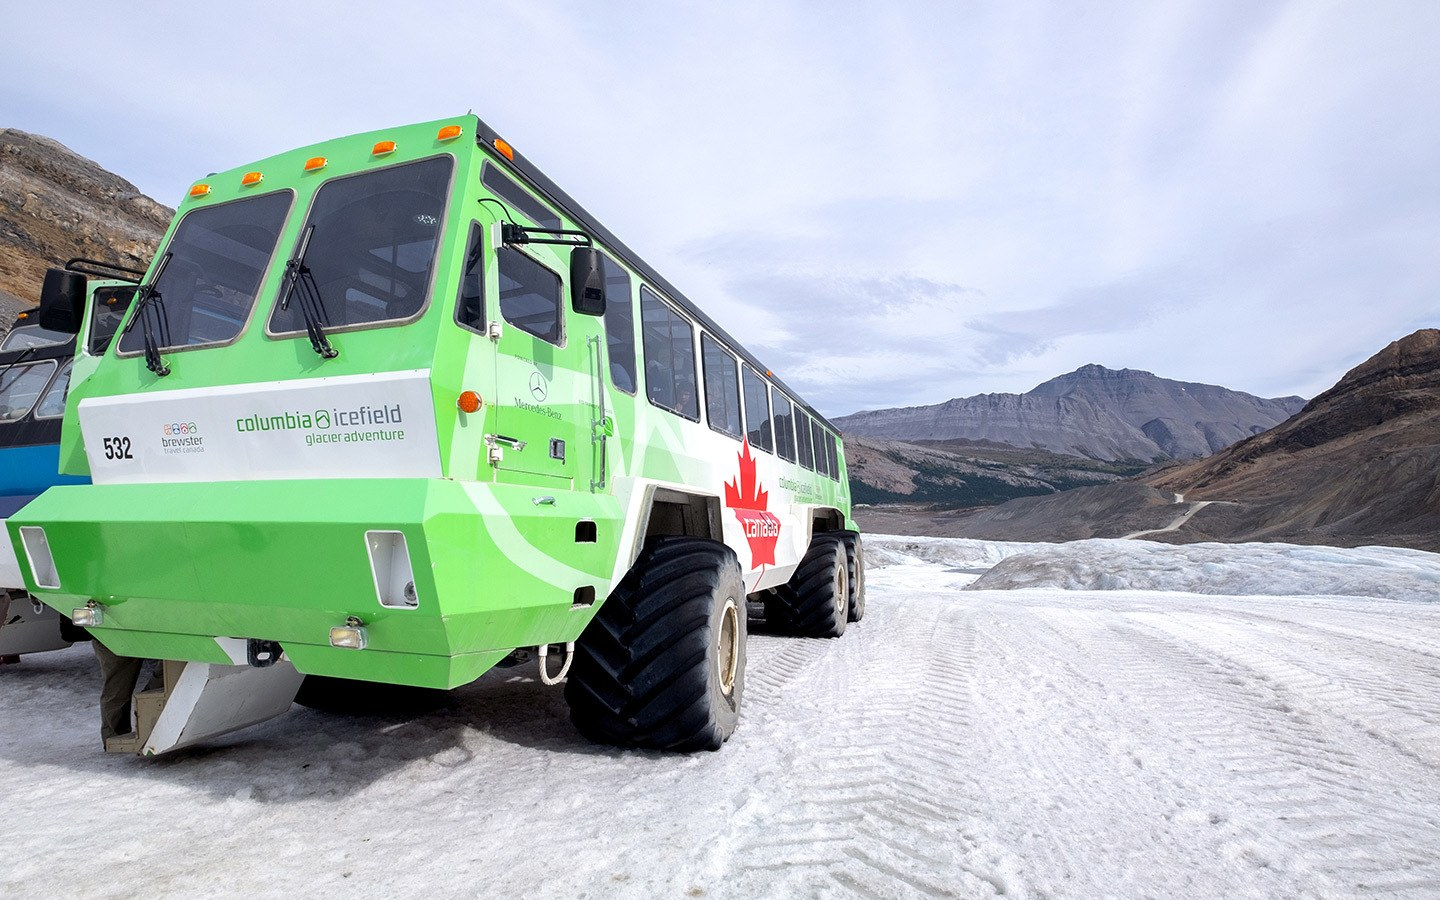 Ice explorer vehicle on the Columbia Icefields tour